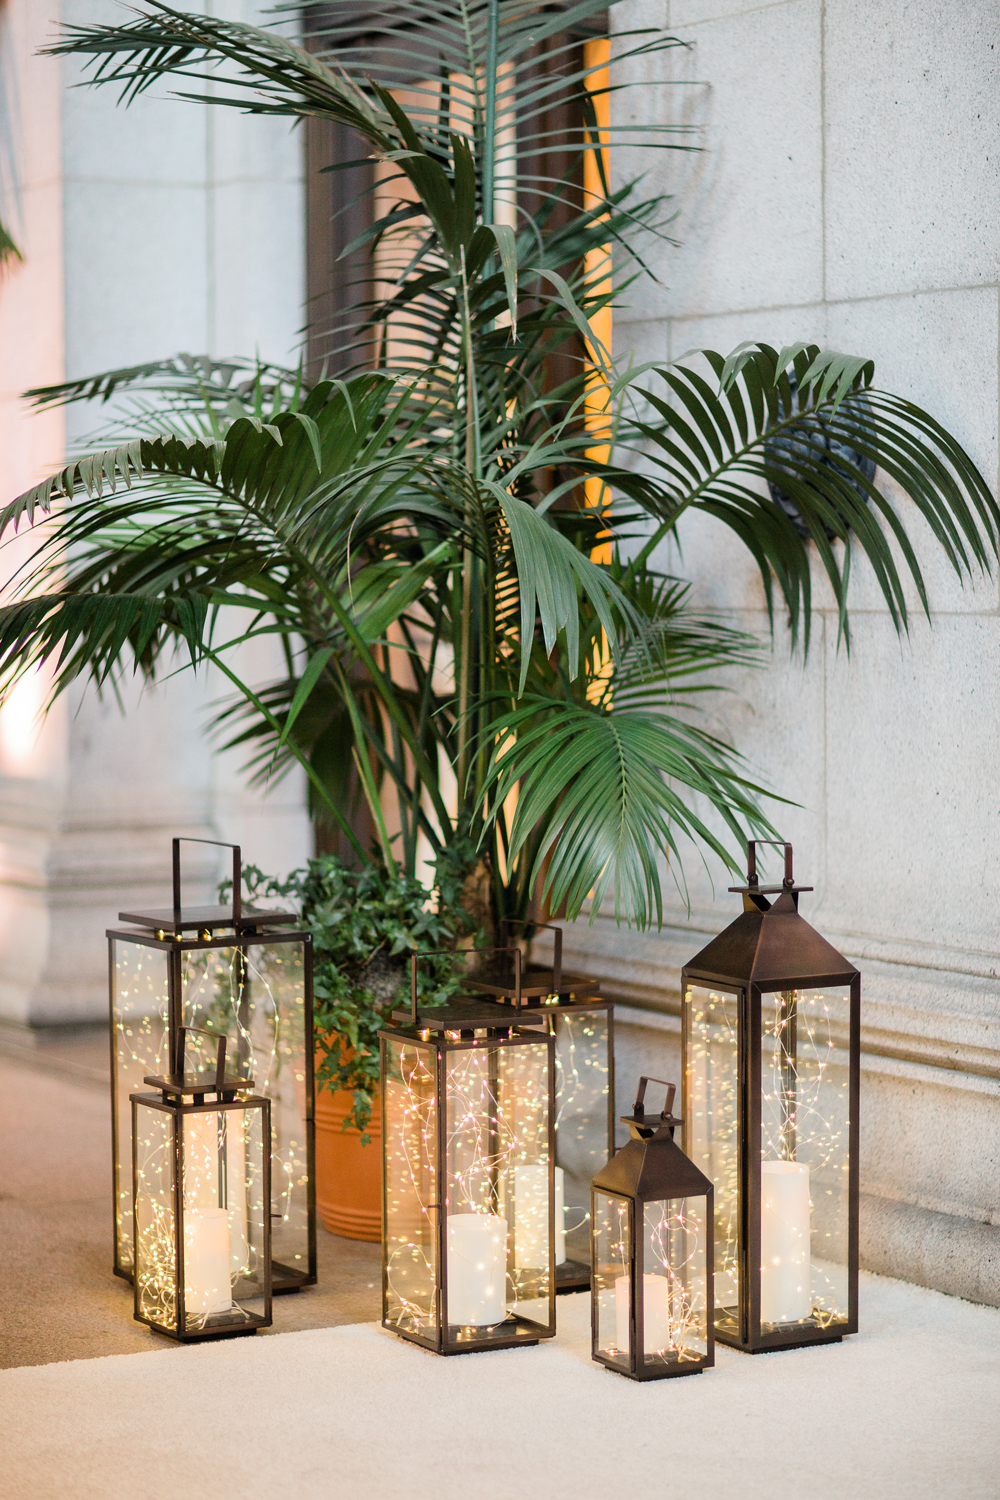 twinkle lights in lanterns around palm tree